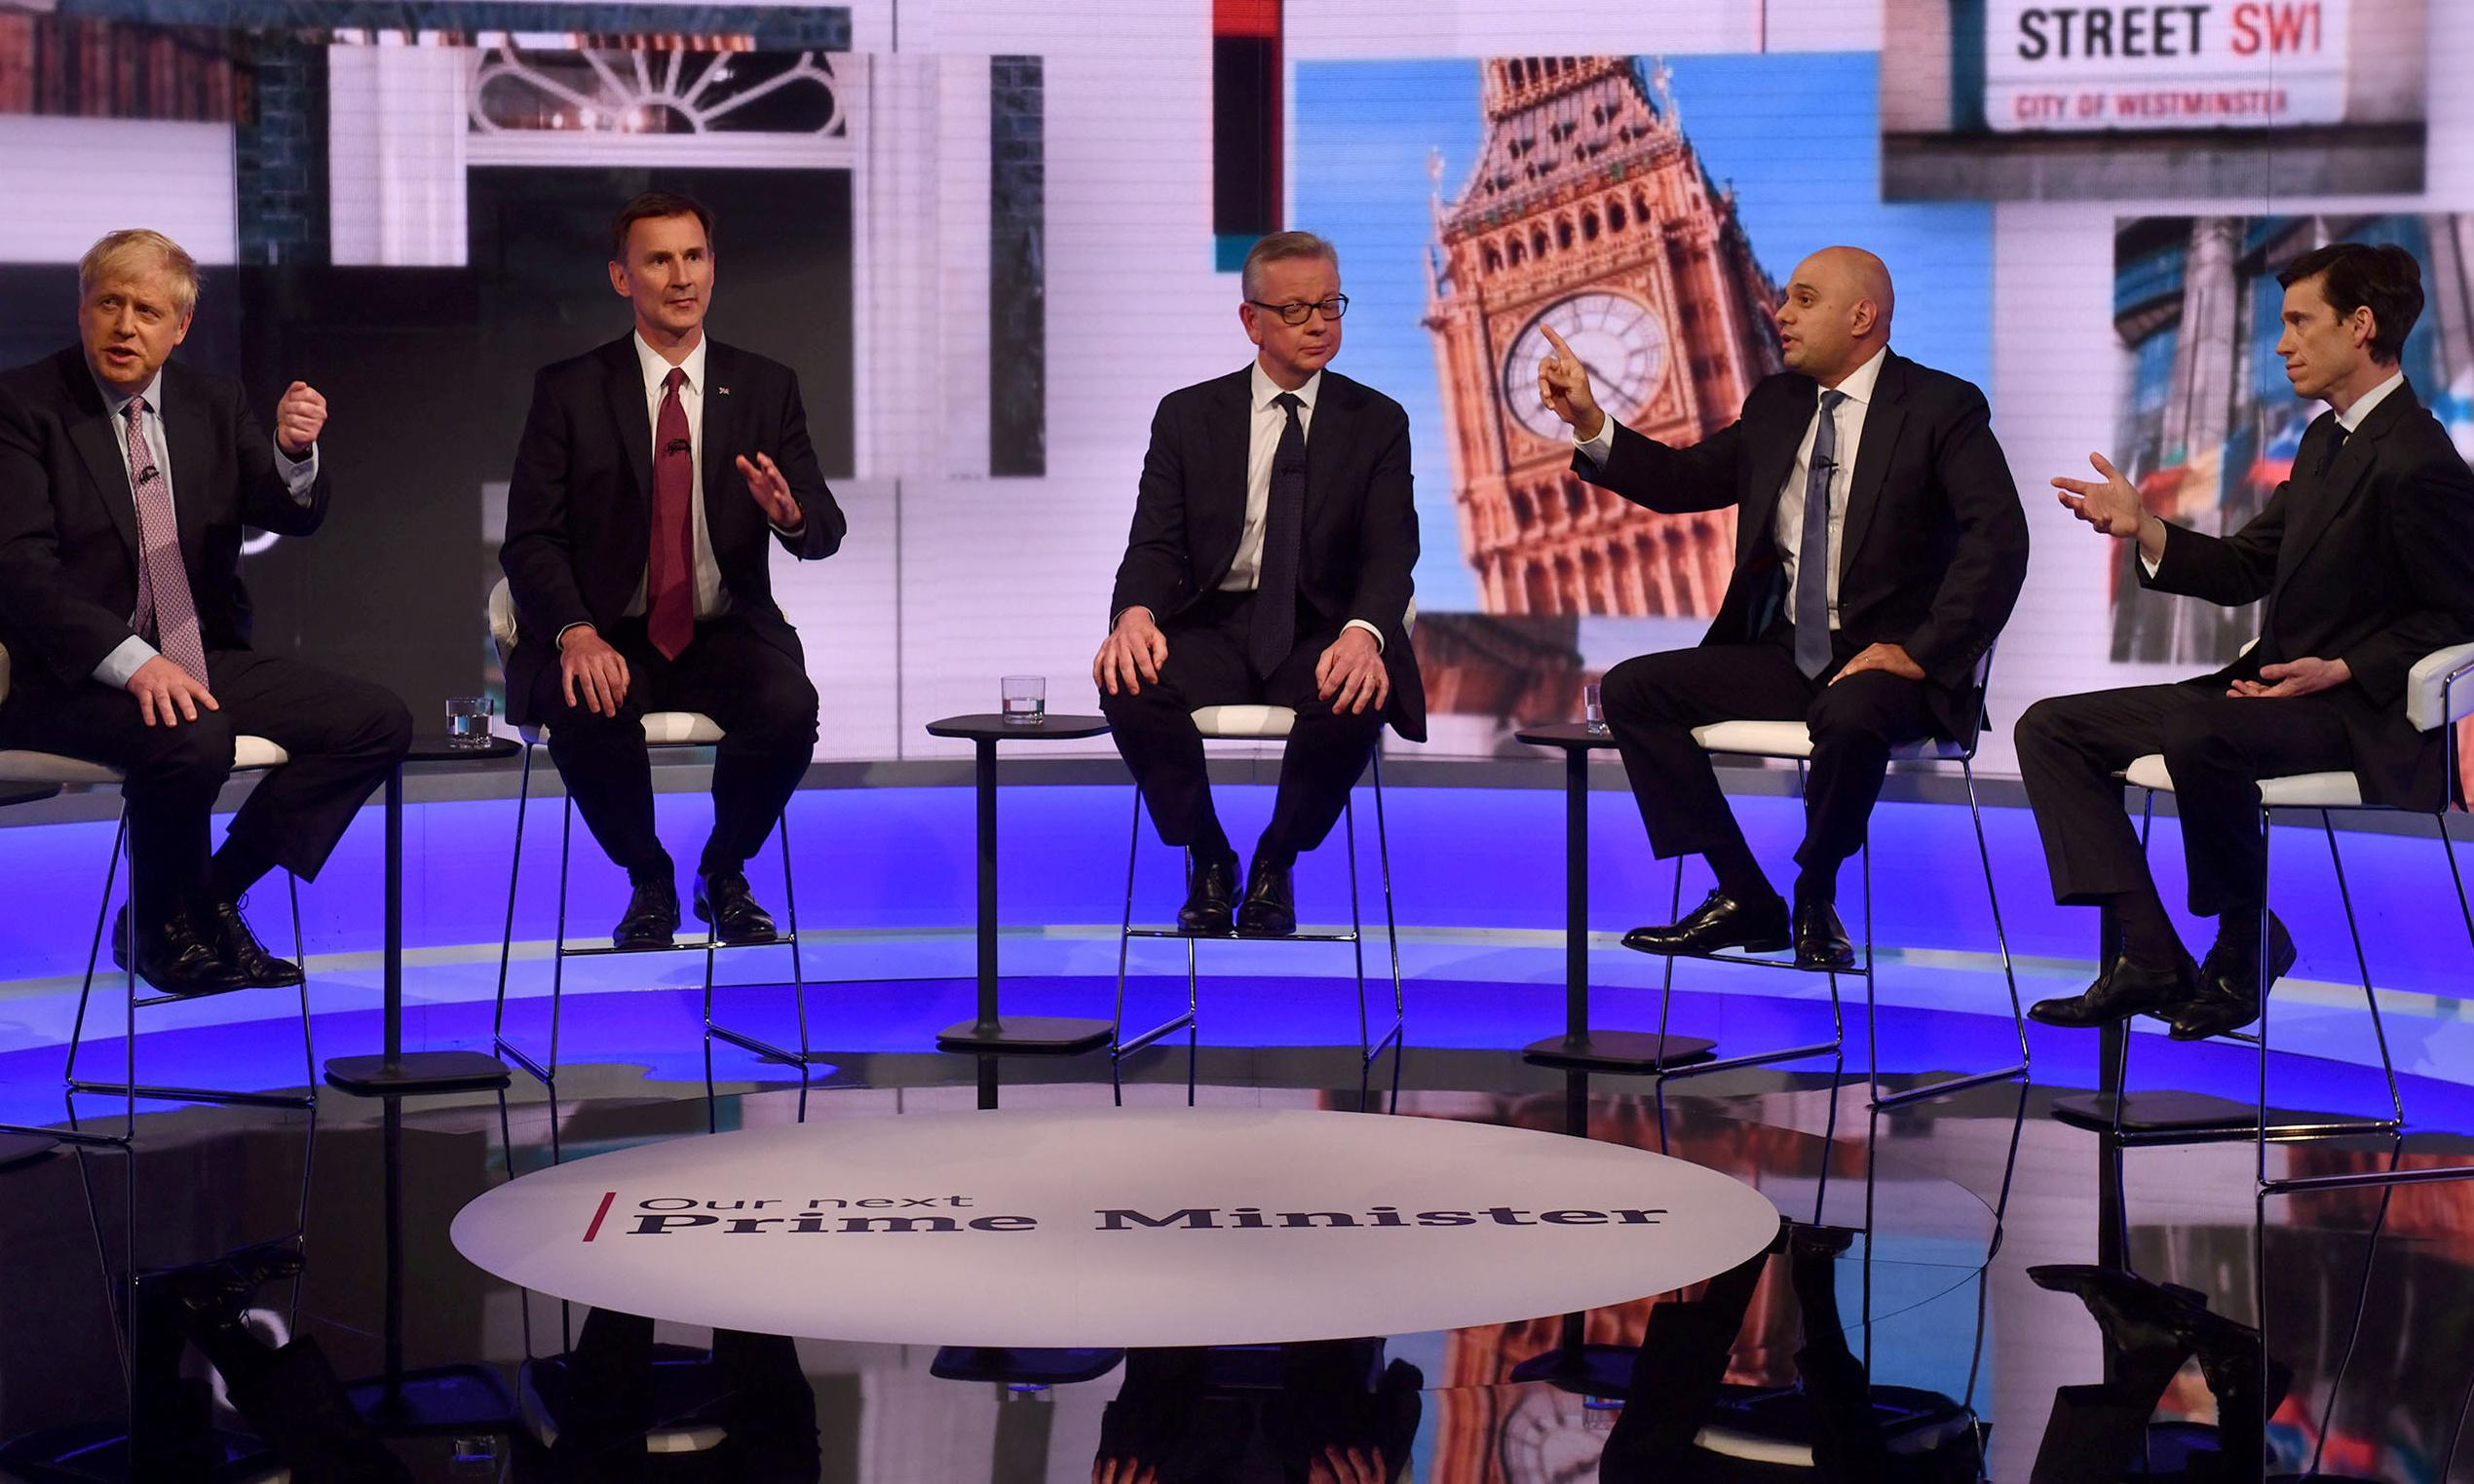 I asked the five candidates about climate in the TV debate. None has a clear plan